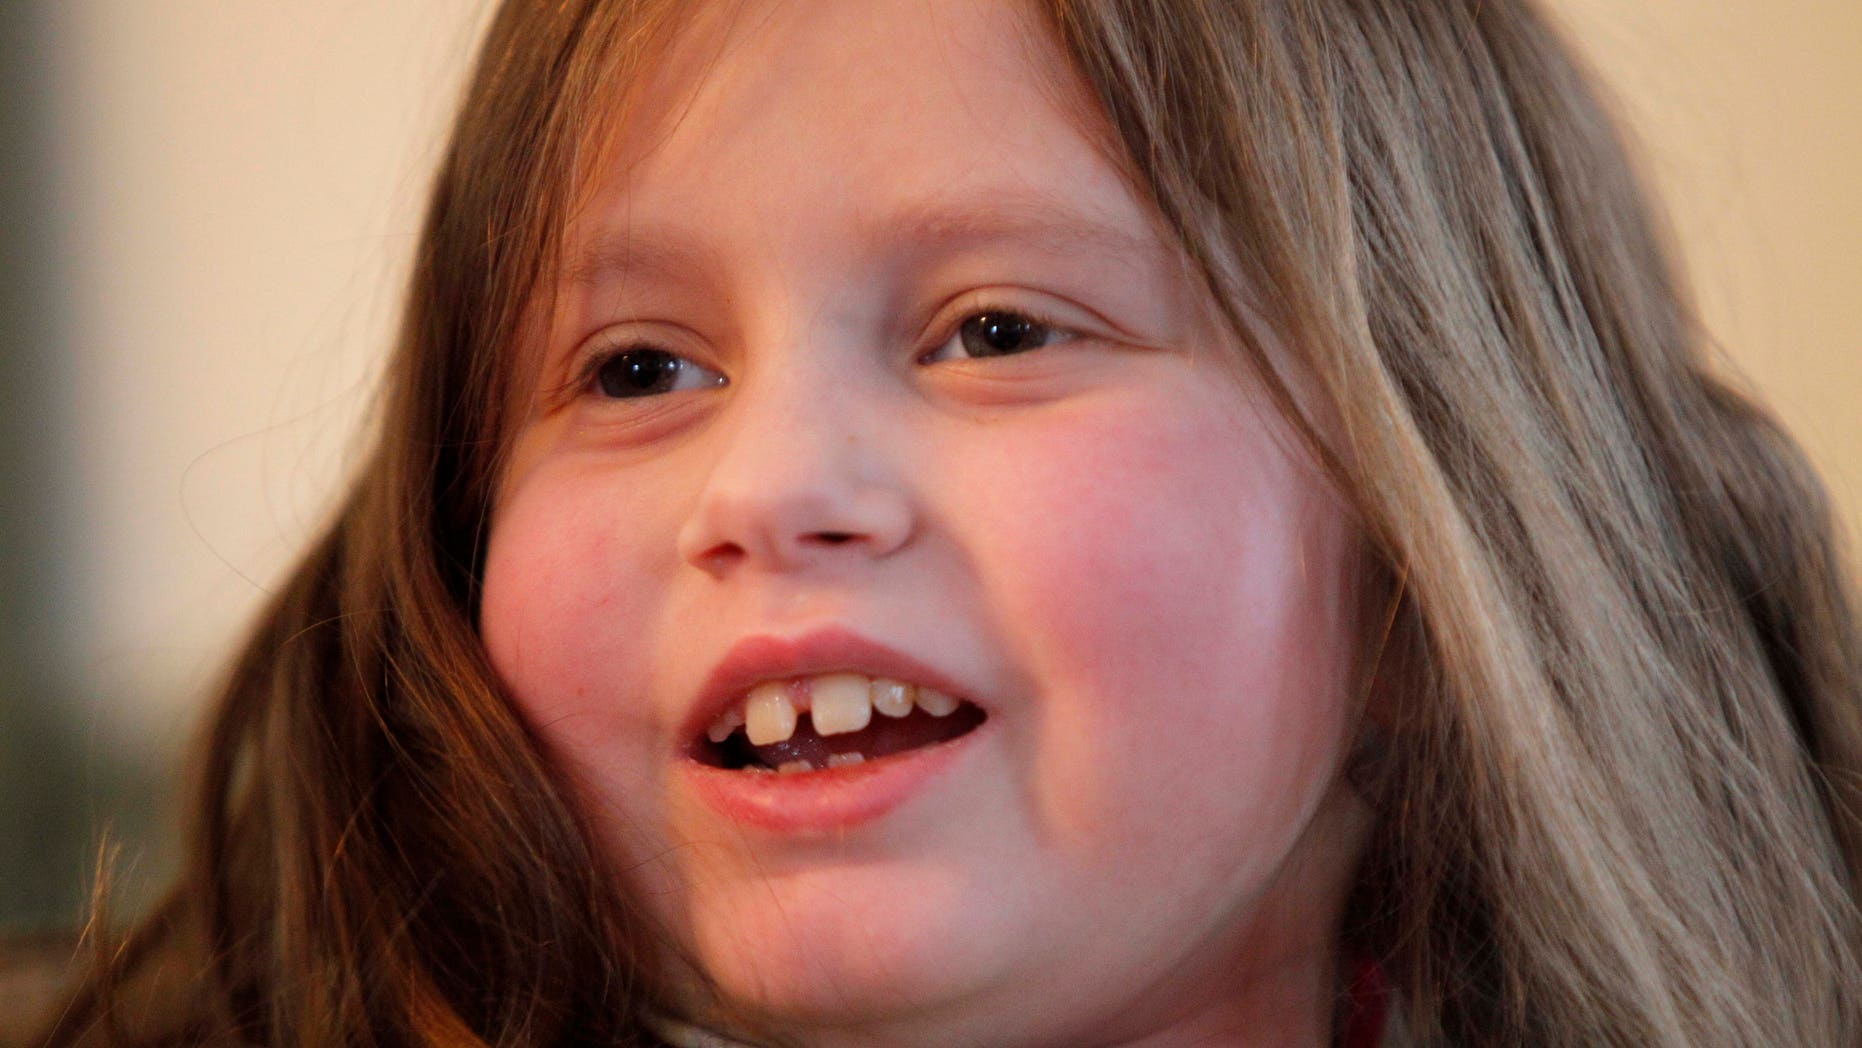 Alannah Shevenell, 9, after receiving six new organs in a groundbreaking operation. (AP Photo/Robert F. Bukaty)